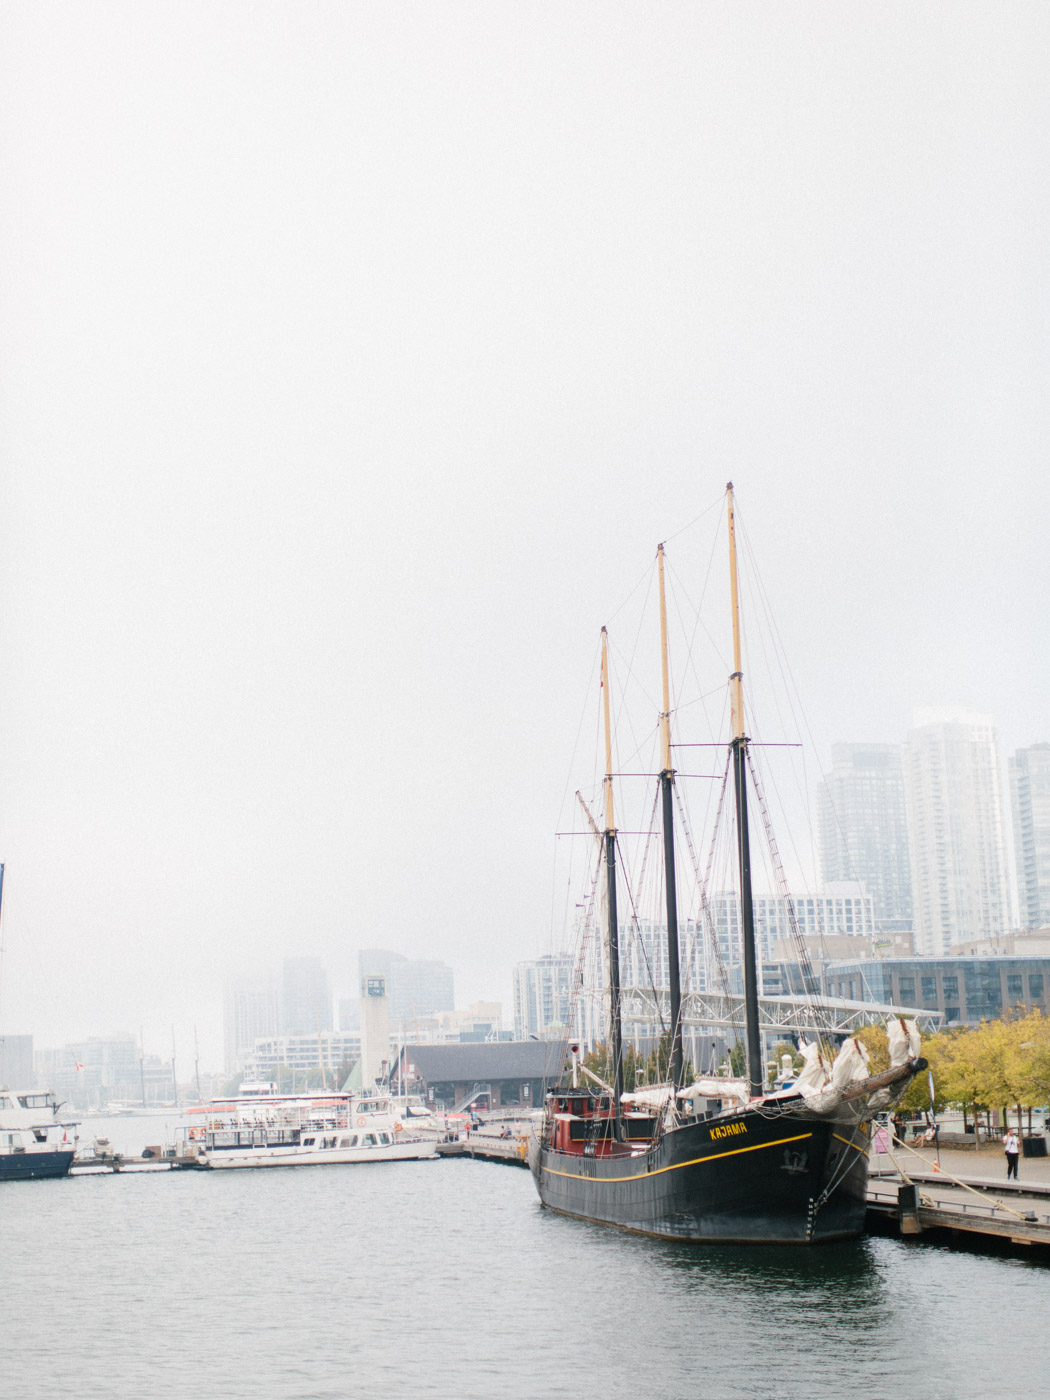 corynn_fowler_photography_toronto_wedding_boat_harbourfont-206.jpg